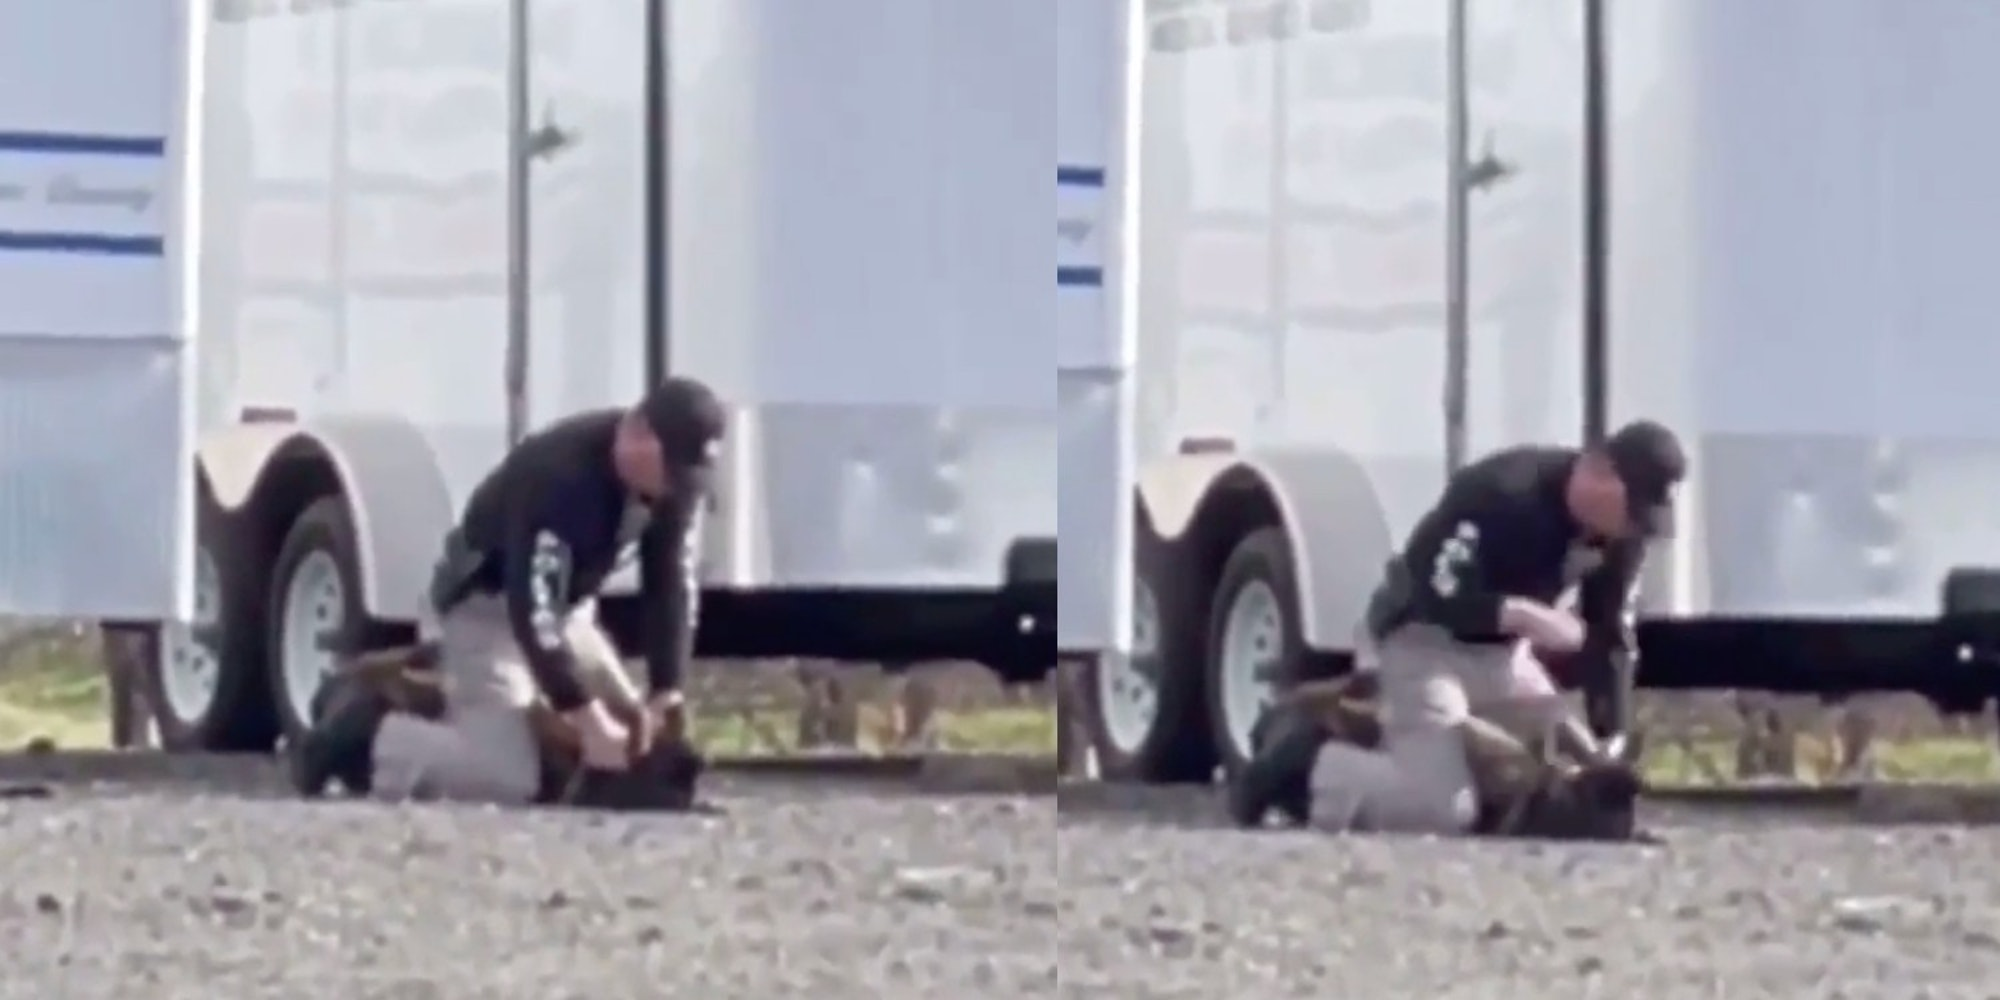 Video shows officer punching a K-9